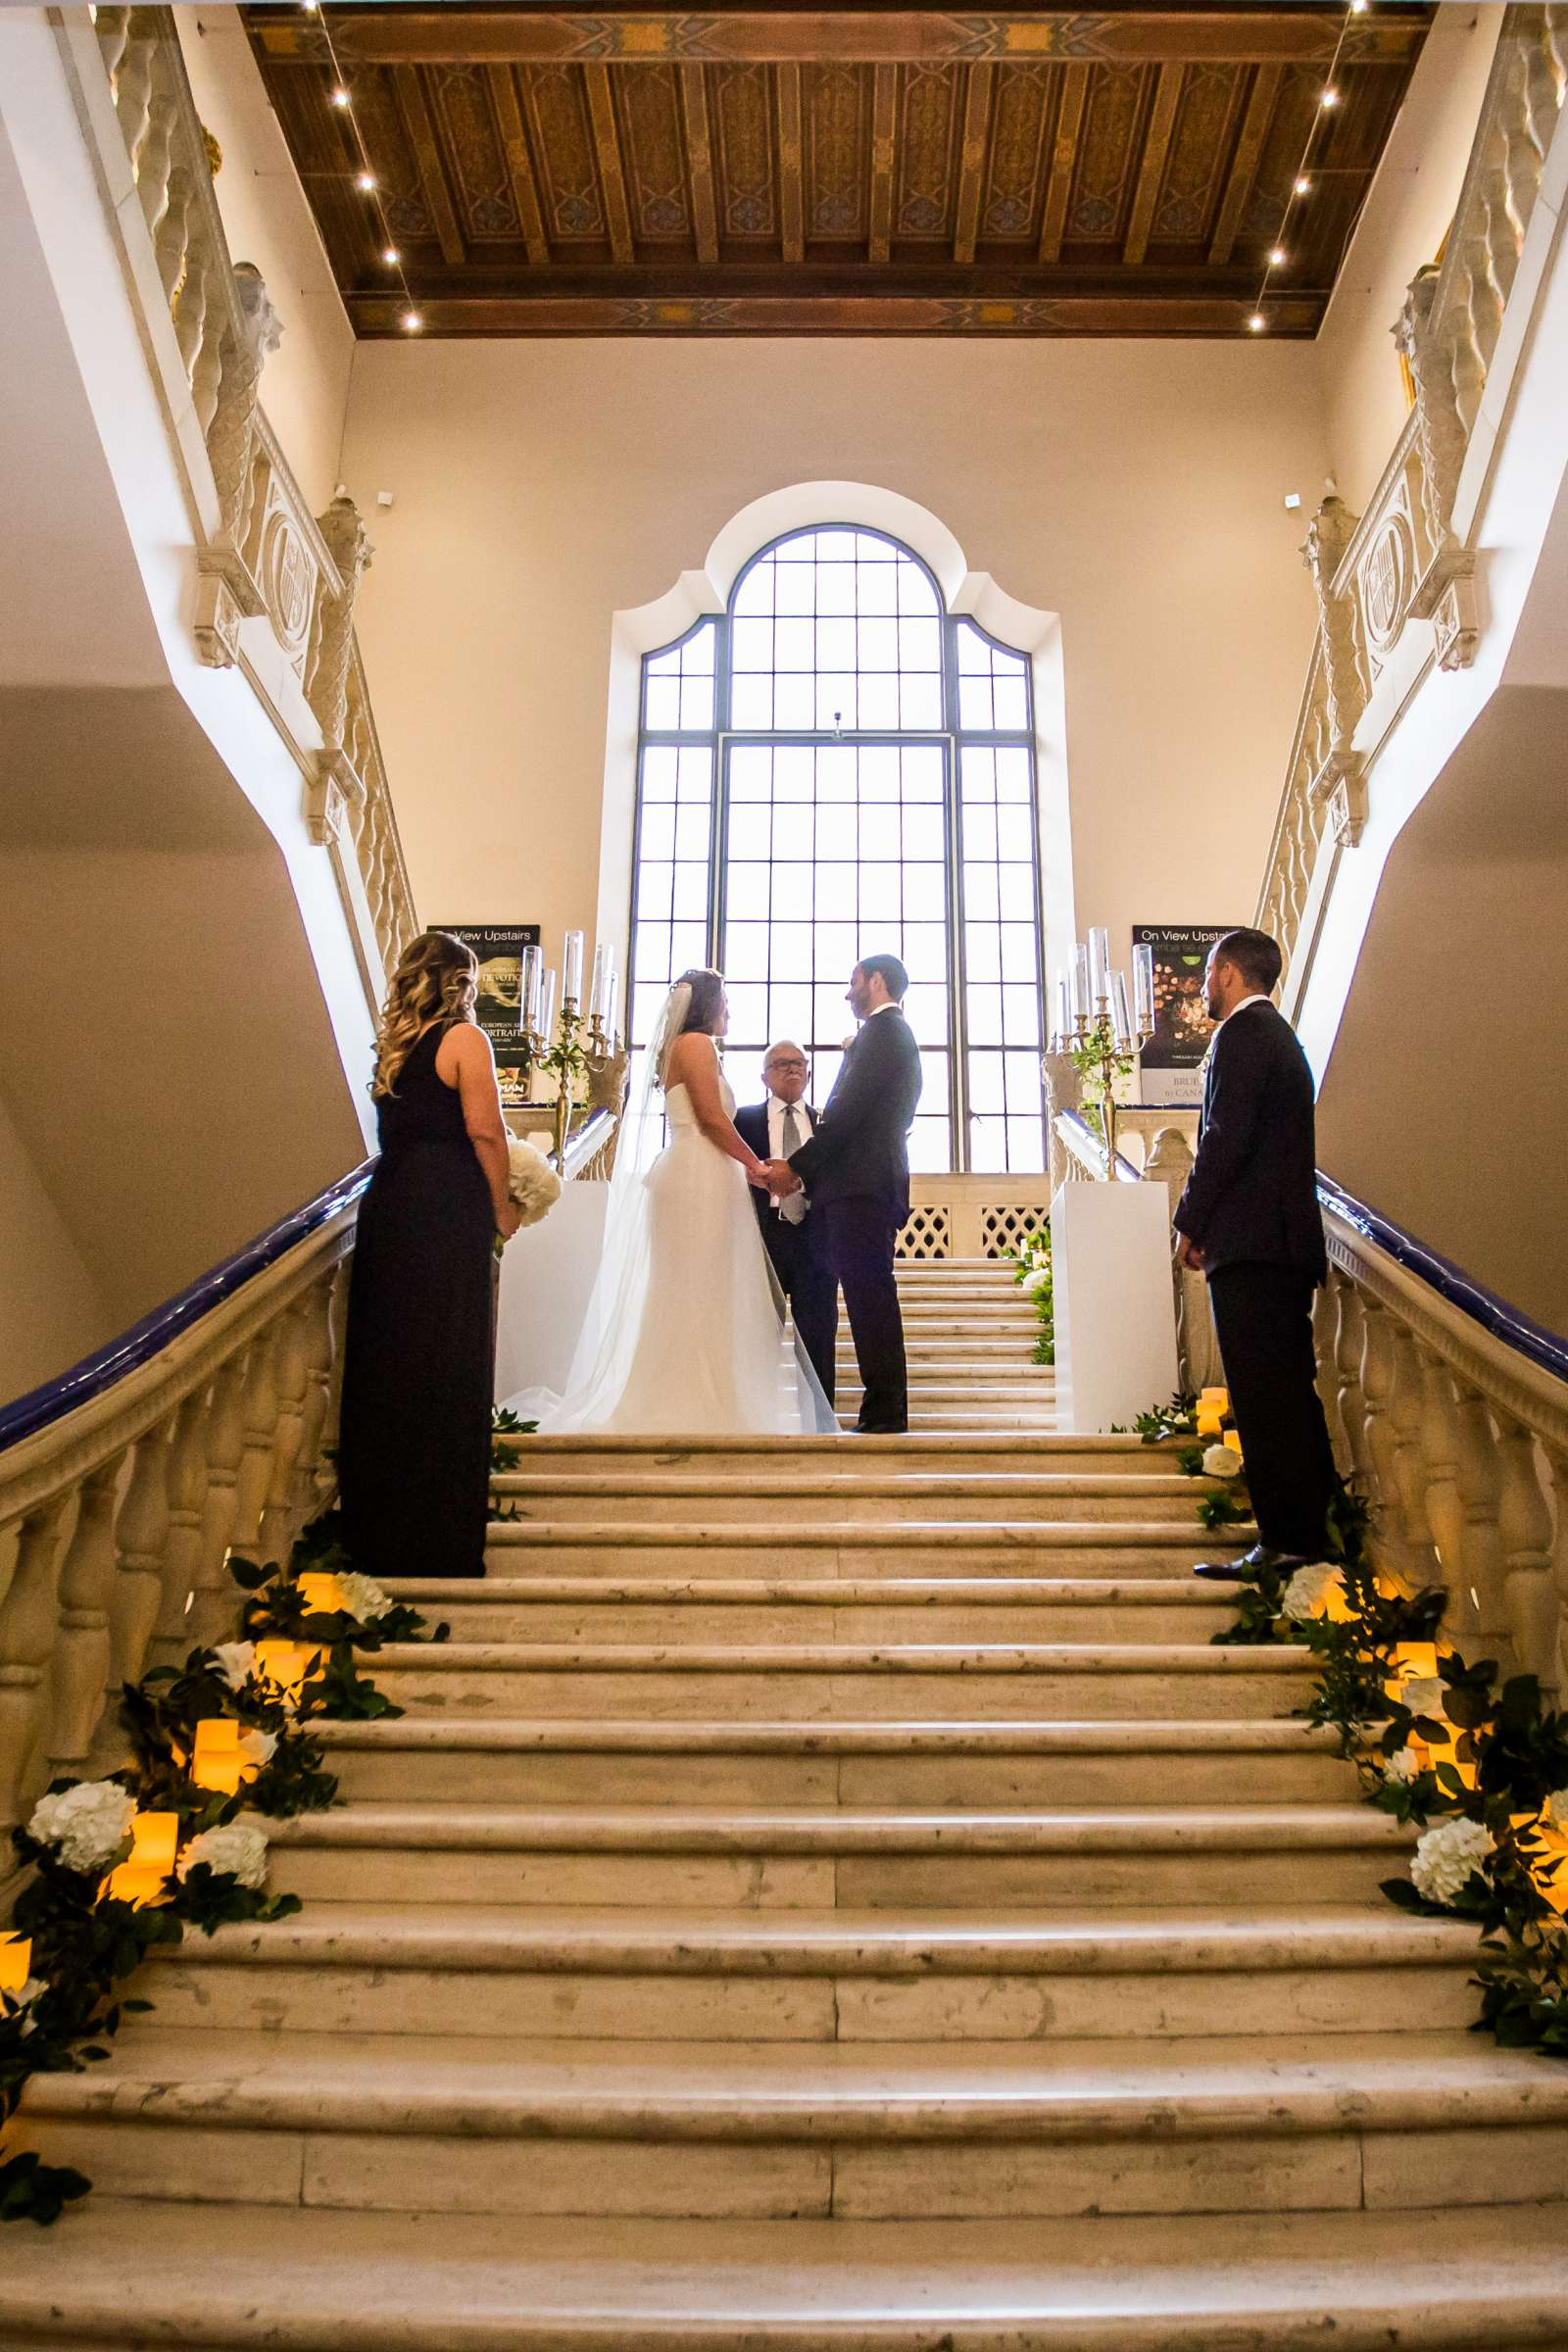 San Diego Museum of Art Wedding coordinated by First Comes Love Weddings & Events, Ruthie and Larry Wedding Photo #236799 by True Photography